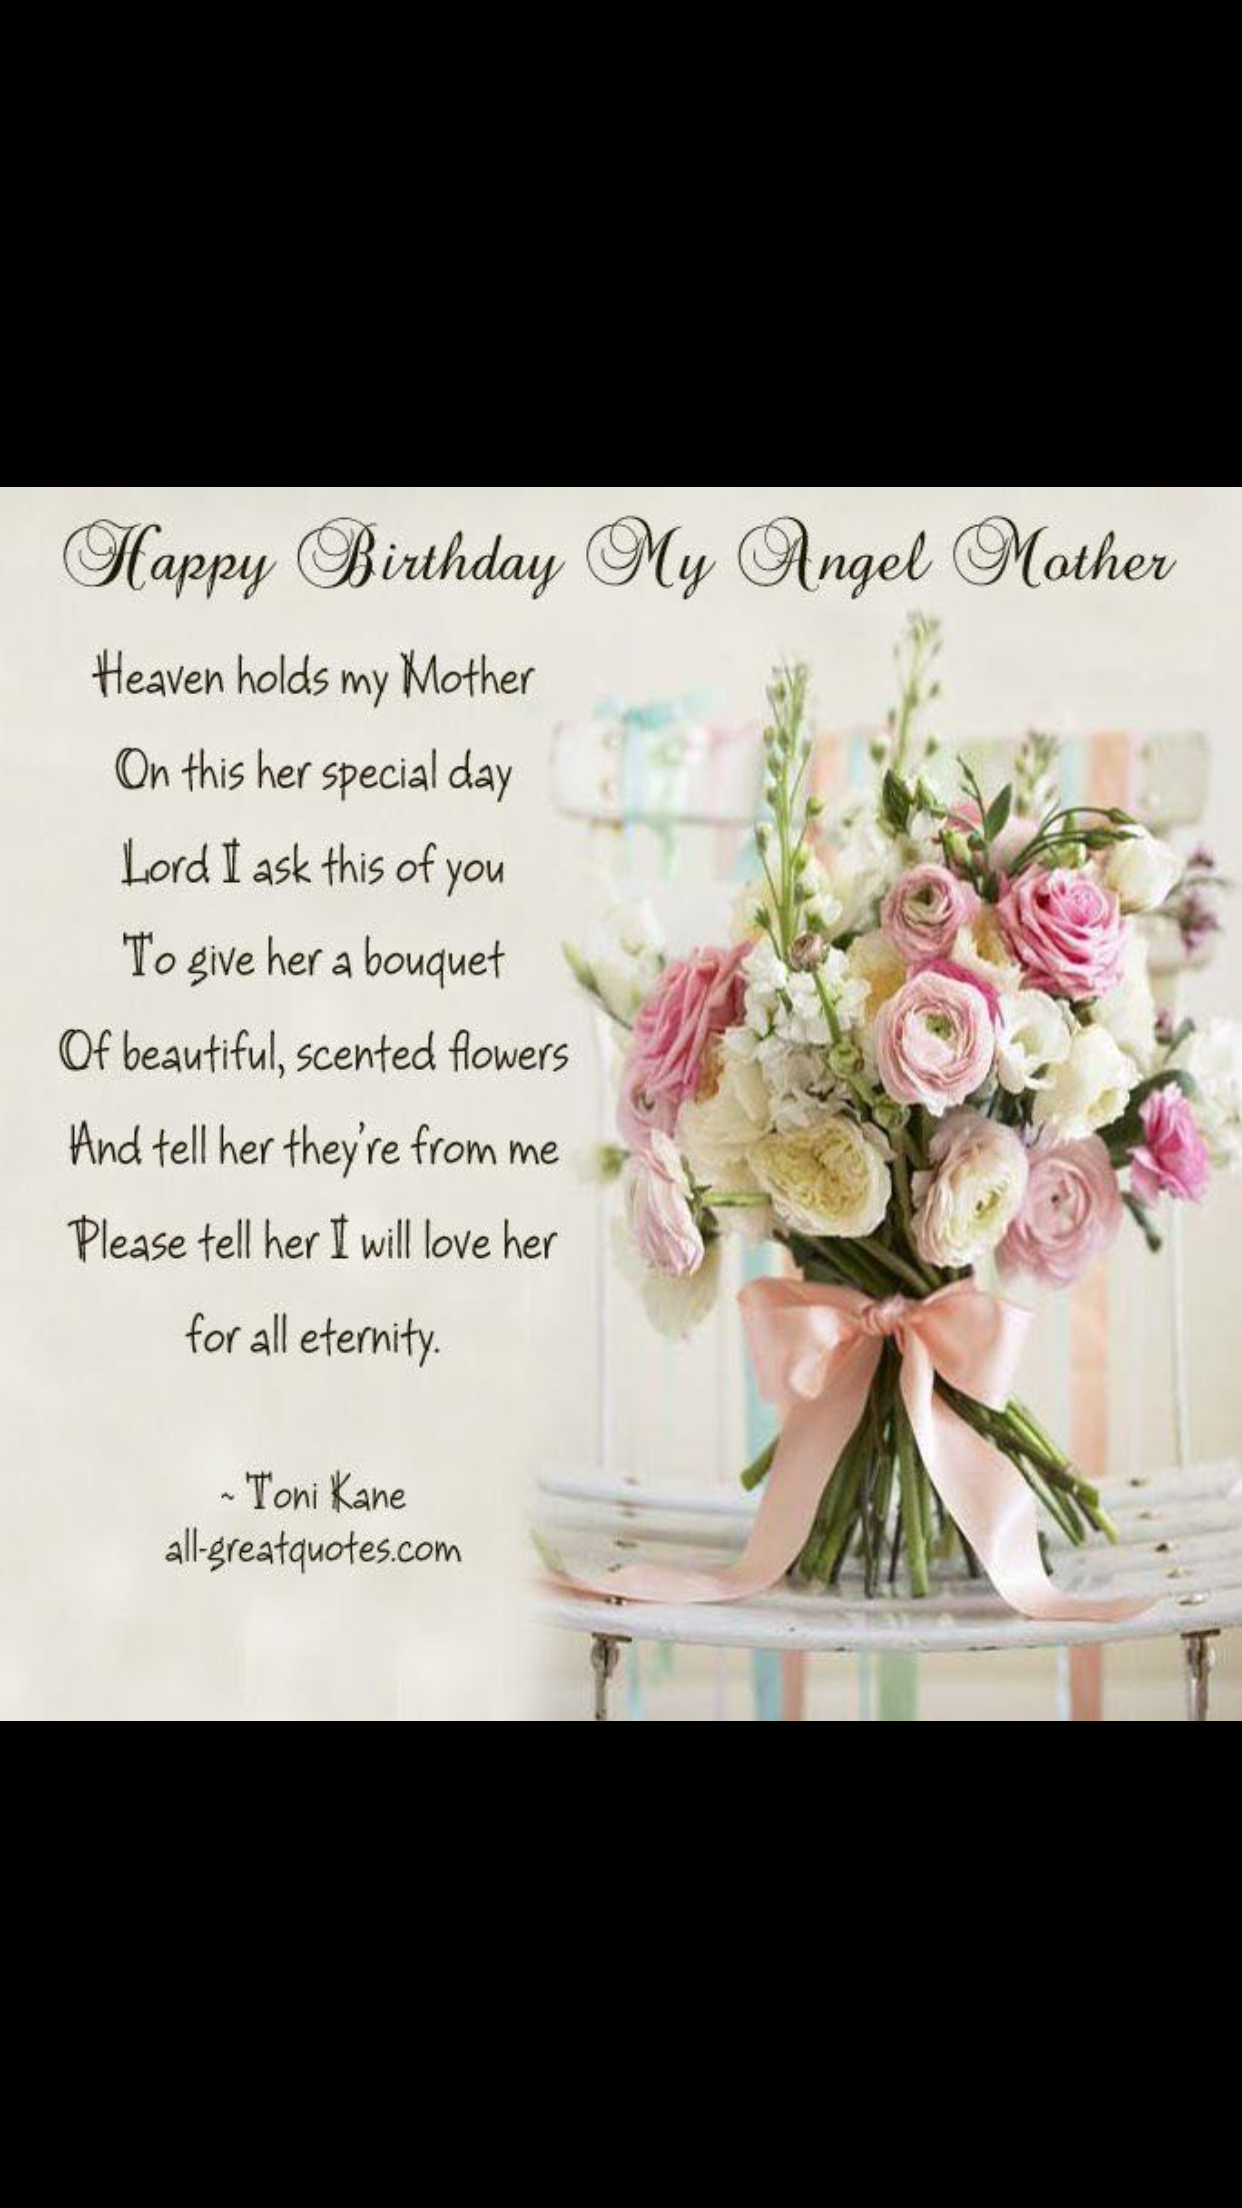 Pin by Lori Stiver on Quotes & Sayings Mom birthday